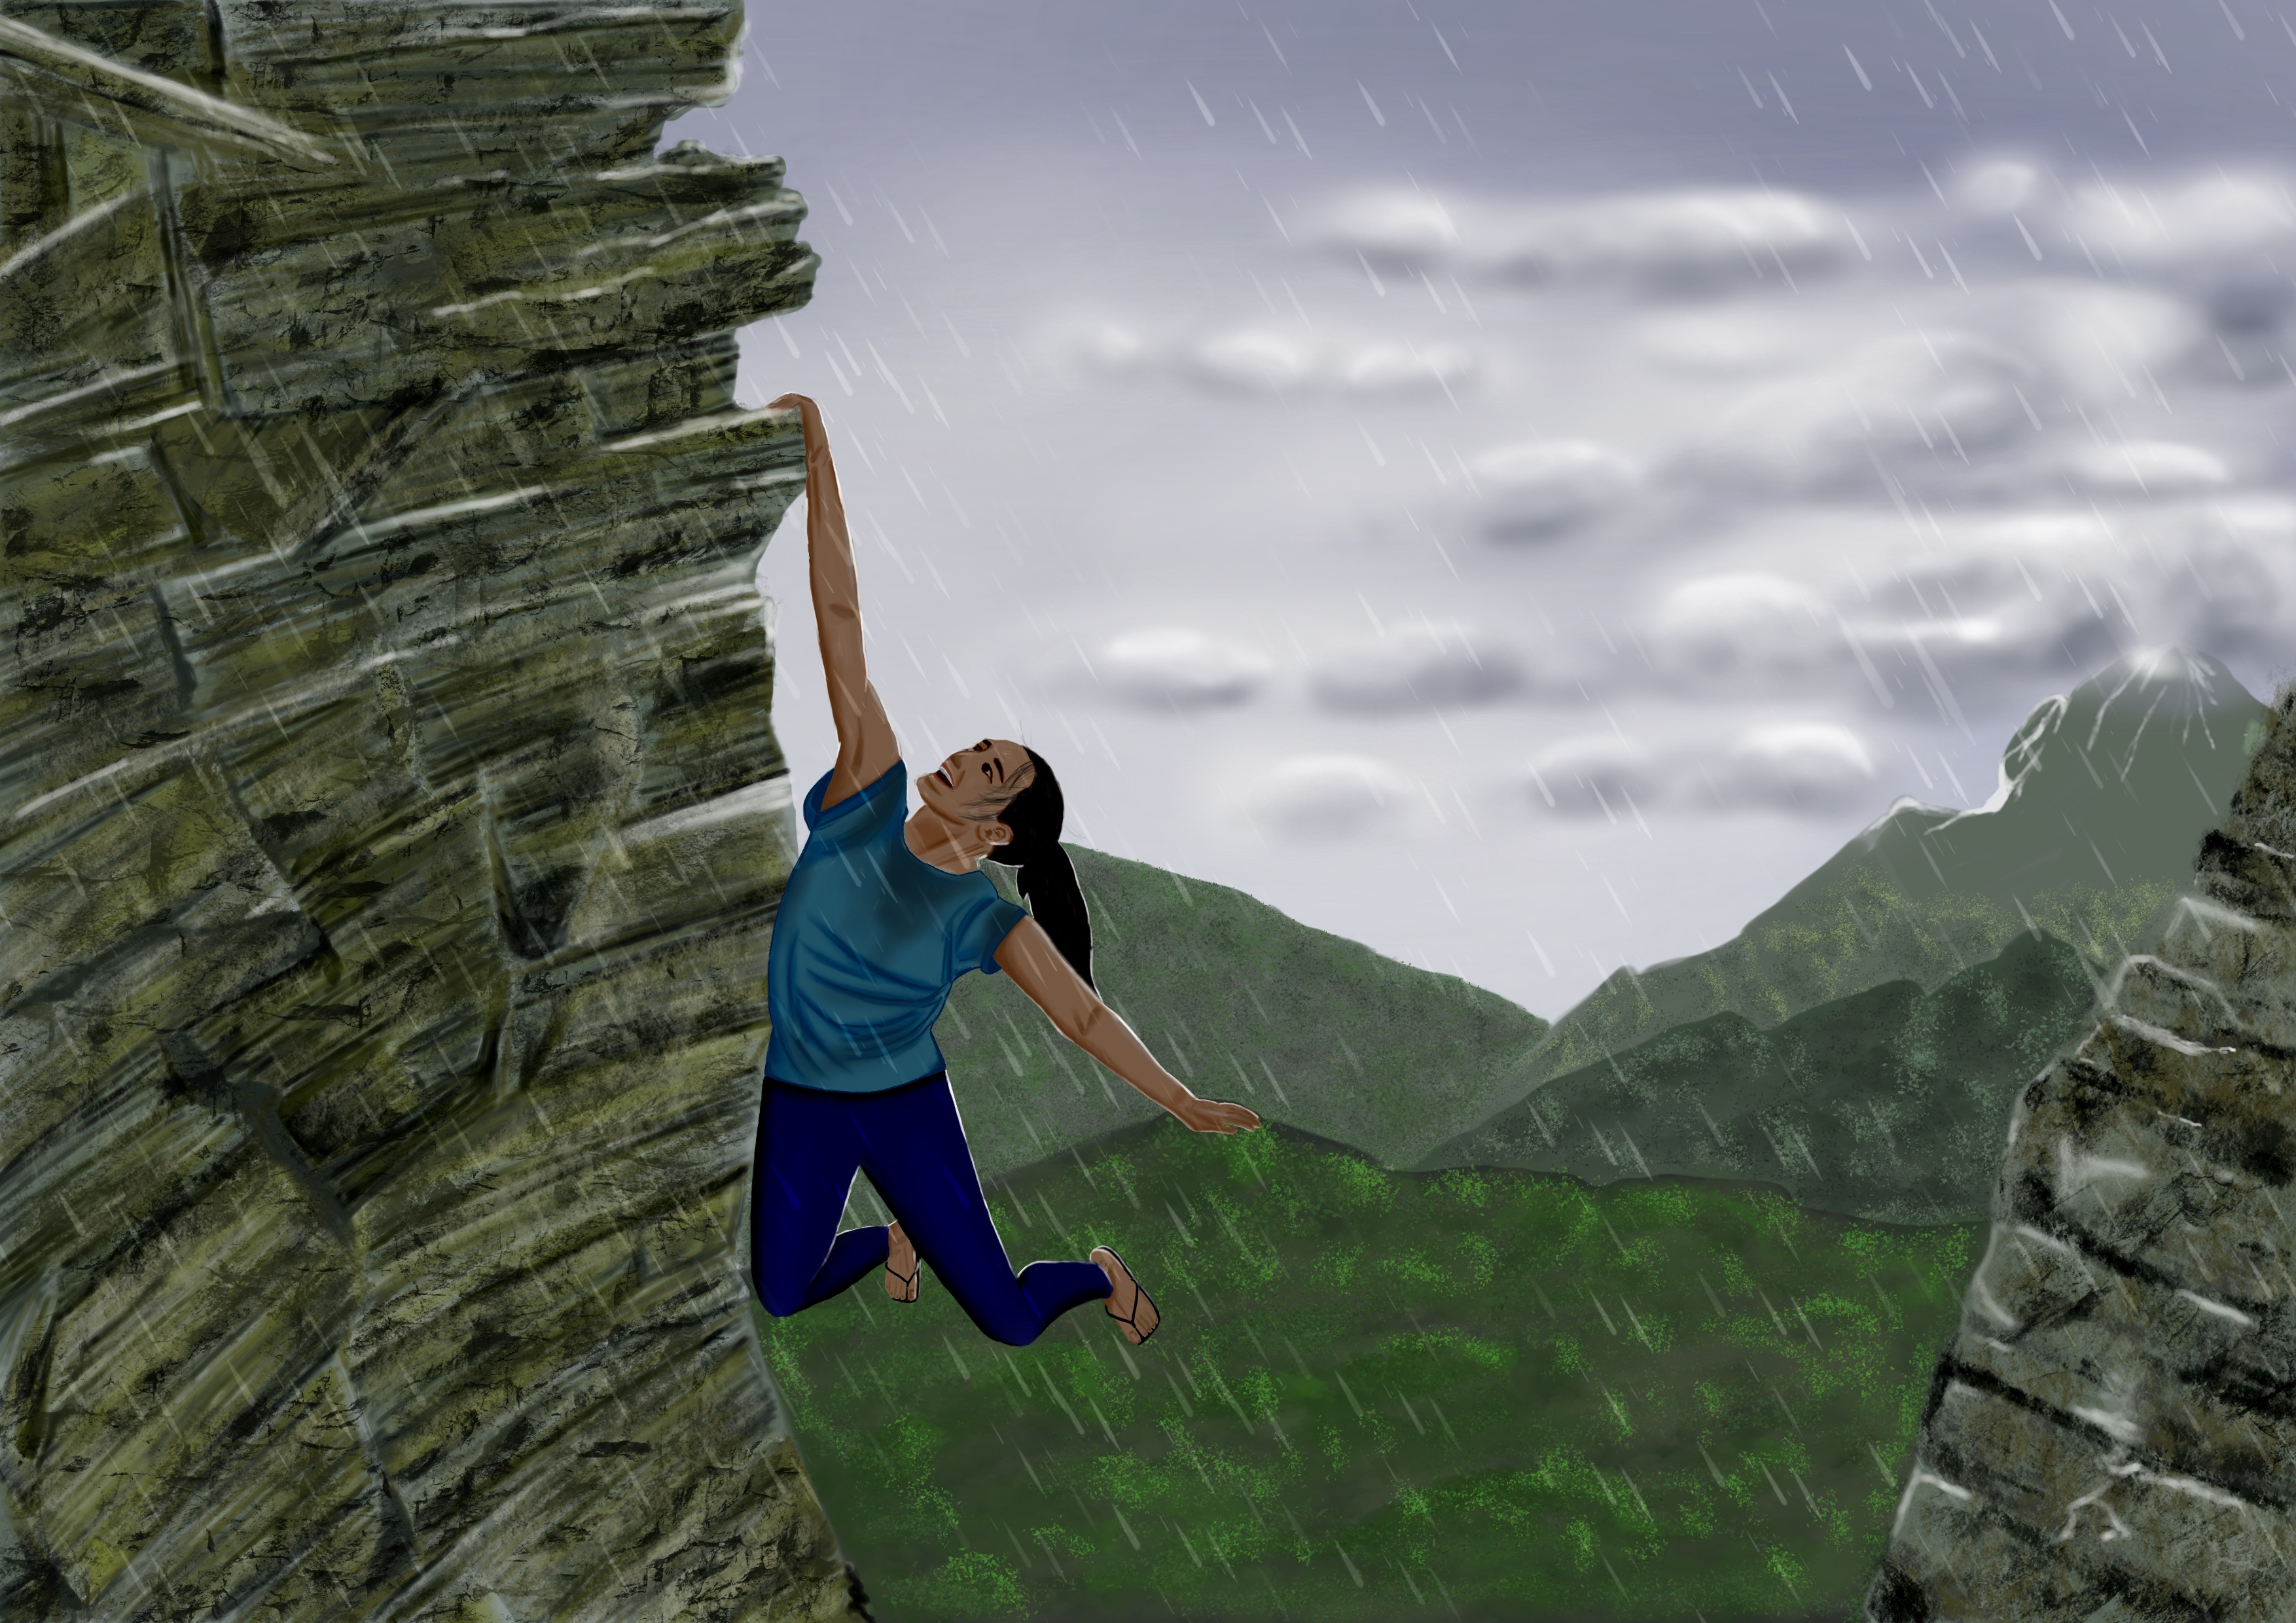 Girl hanging from cliff face with one hand